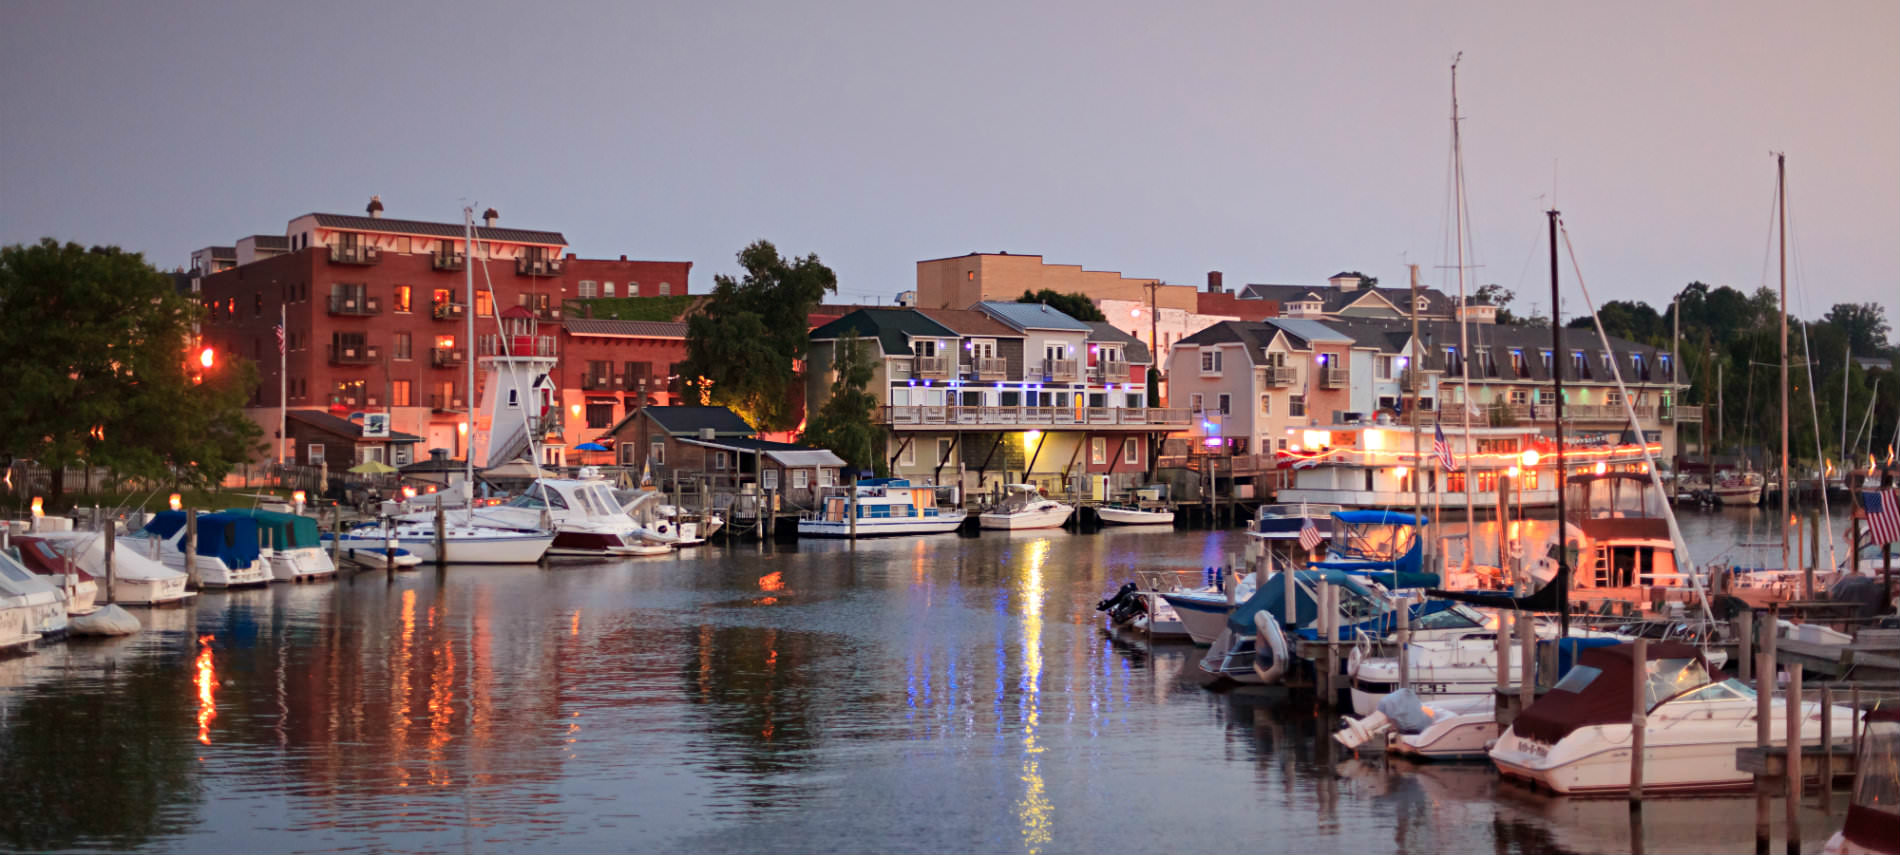 Well-lit buildings along waterfront at dusk, boats docked with lights shining off water, trees in distance.